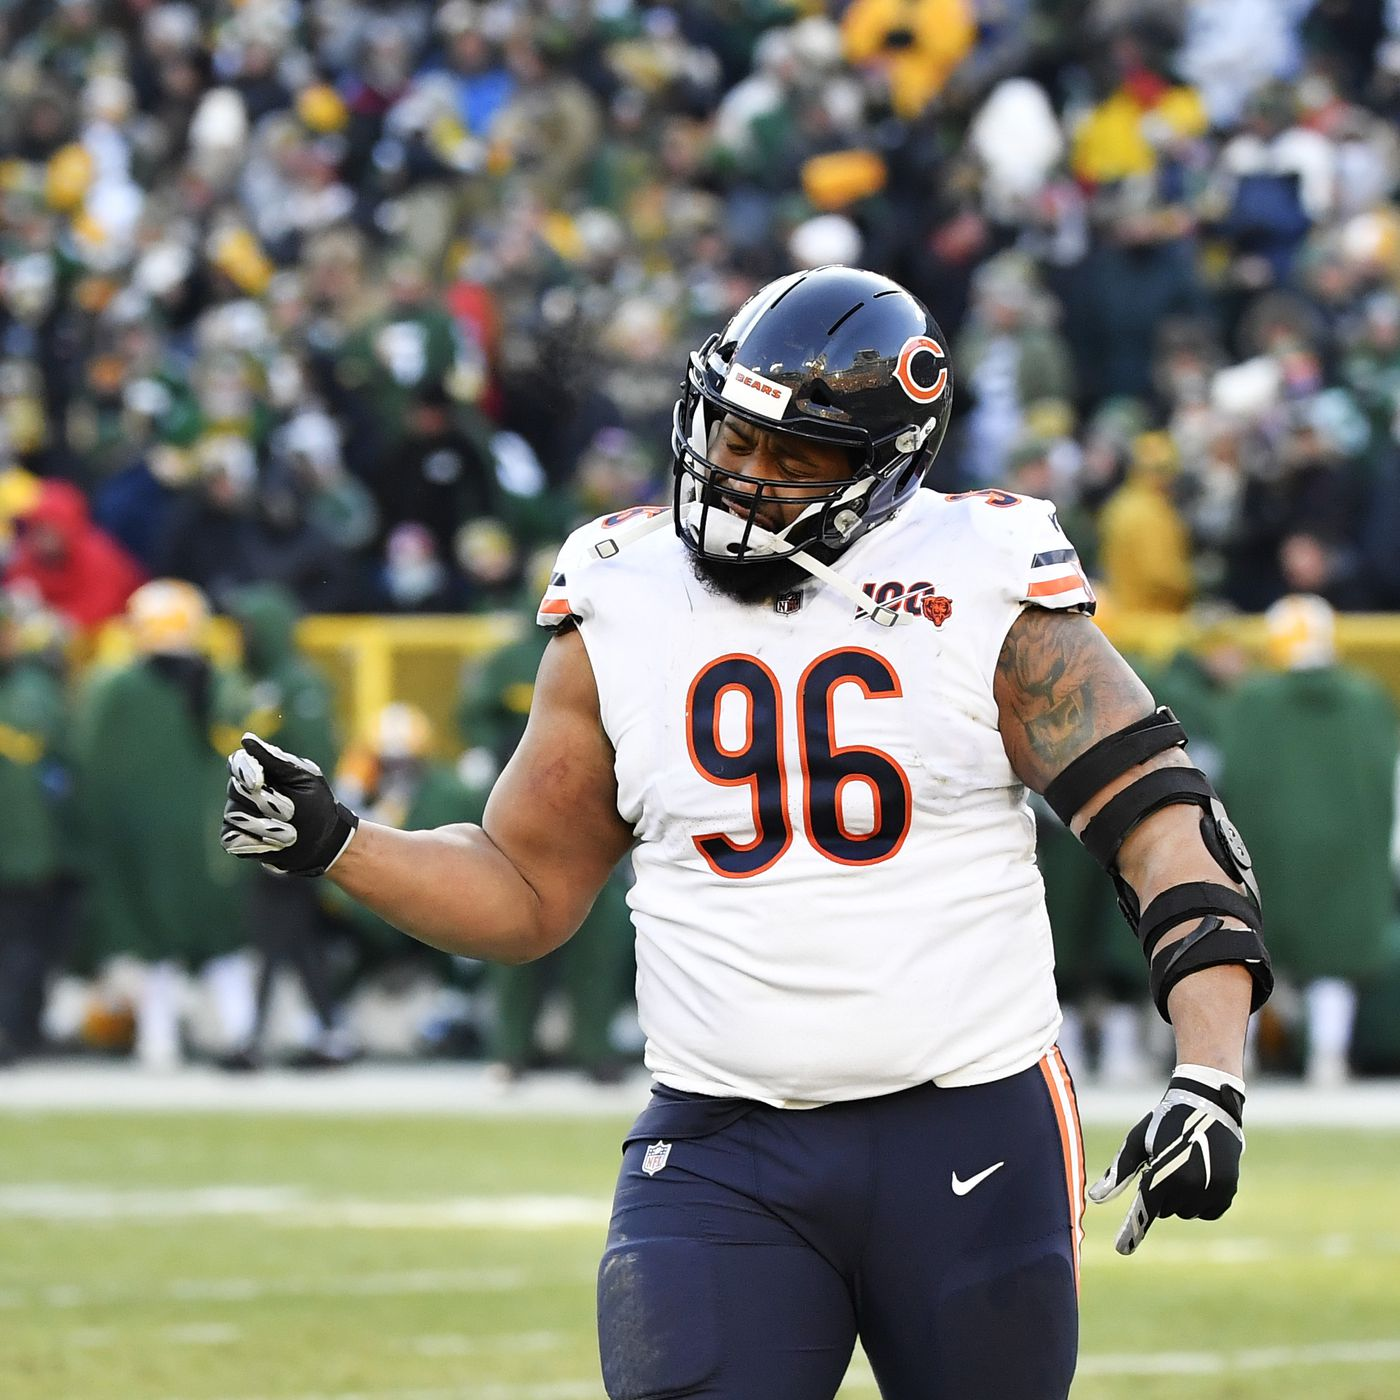 Nfl S Covid 19 Virus Rules Are Good But Players Still Have To Tackle Each Other Chicago Sun Times